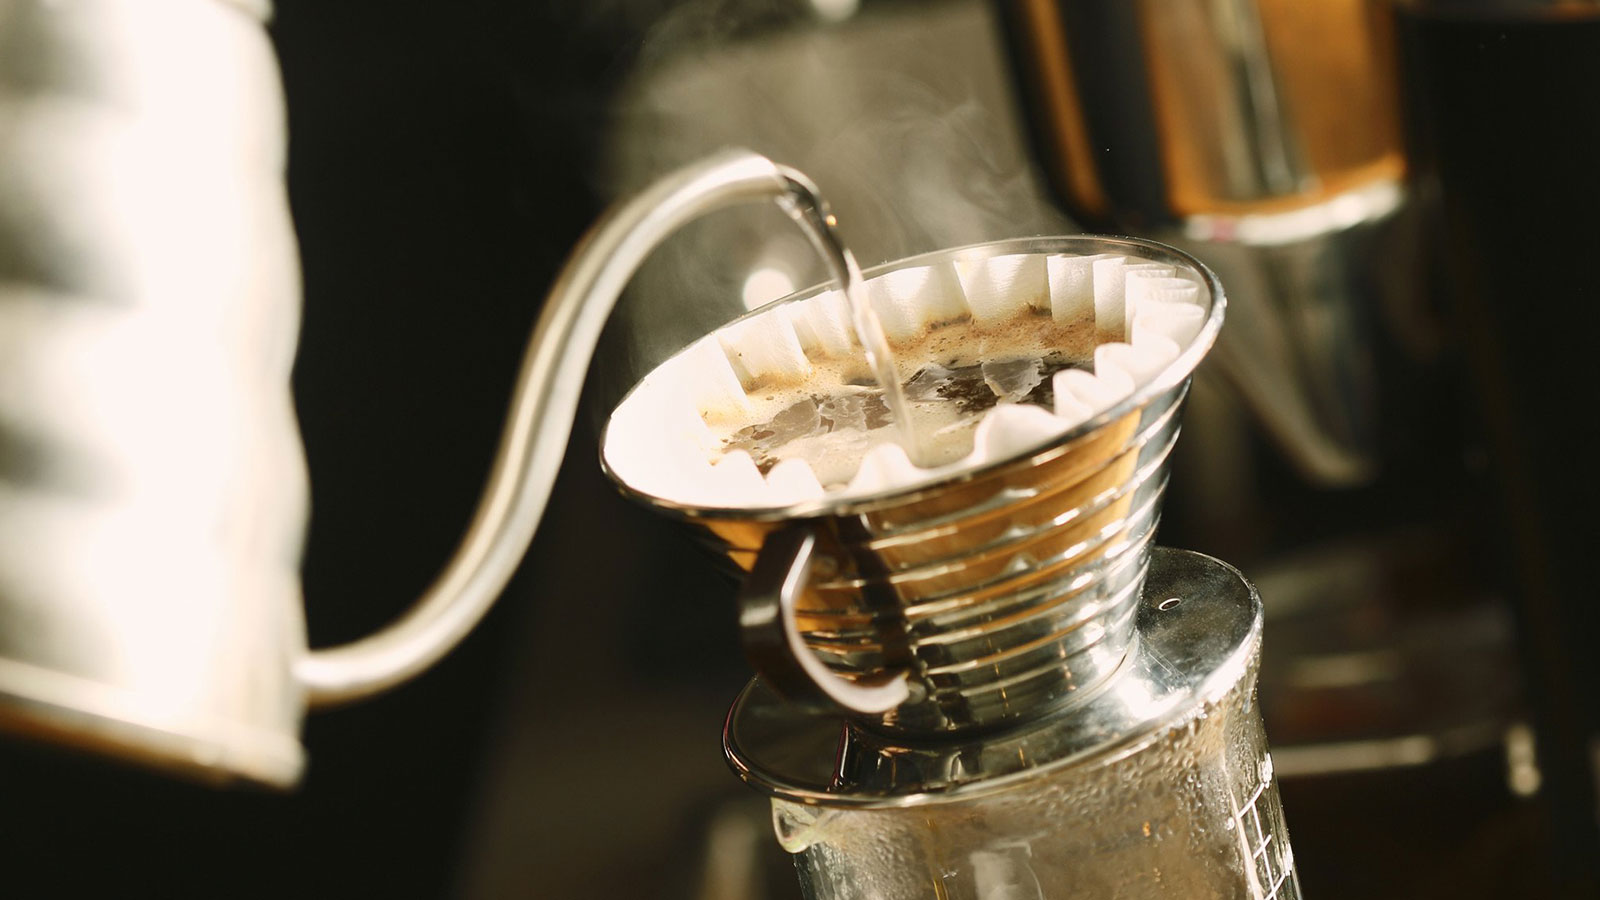 How to Make Pour Over Coffee: The Perfect Cup of Coffee